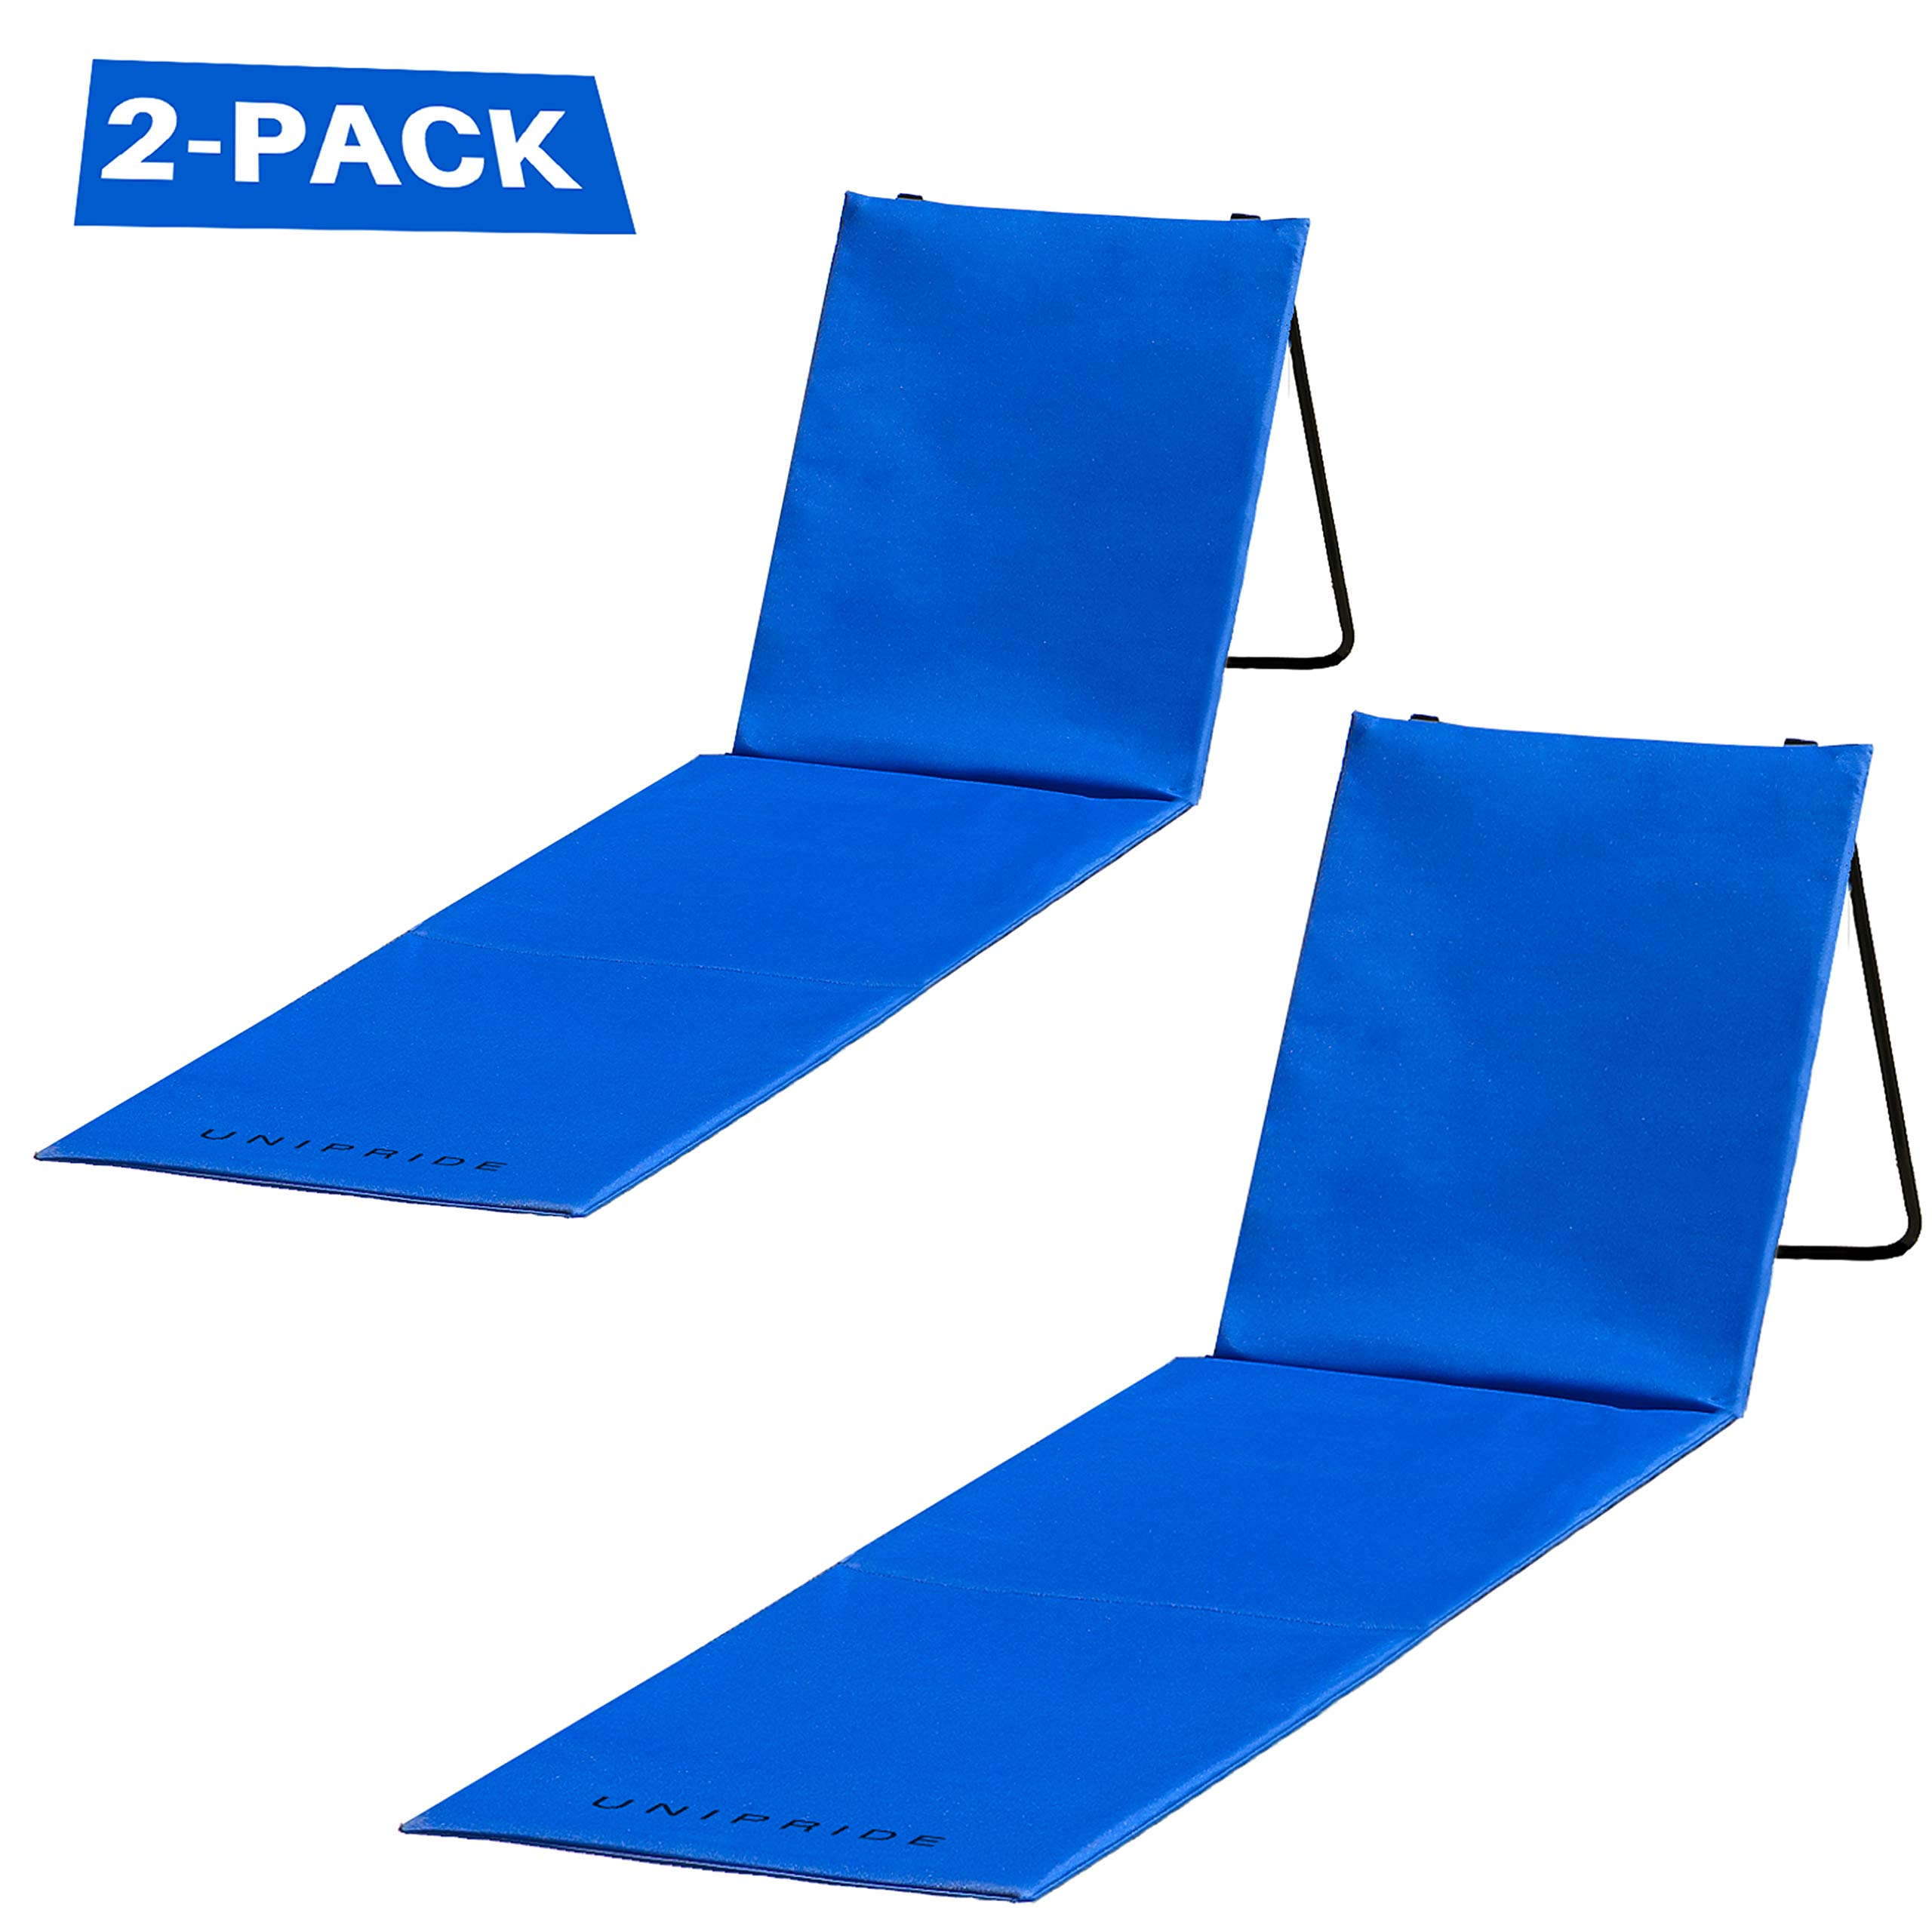 Two Beach Chairs with Backrest - 2-Pack Lounger - Comfortable, Lightweight, Portable and Easy to Carry Around - Use Also As Picnic Or Park Chair by UNIPRIDE